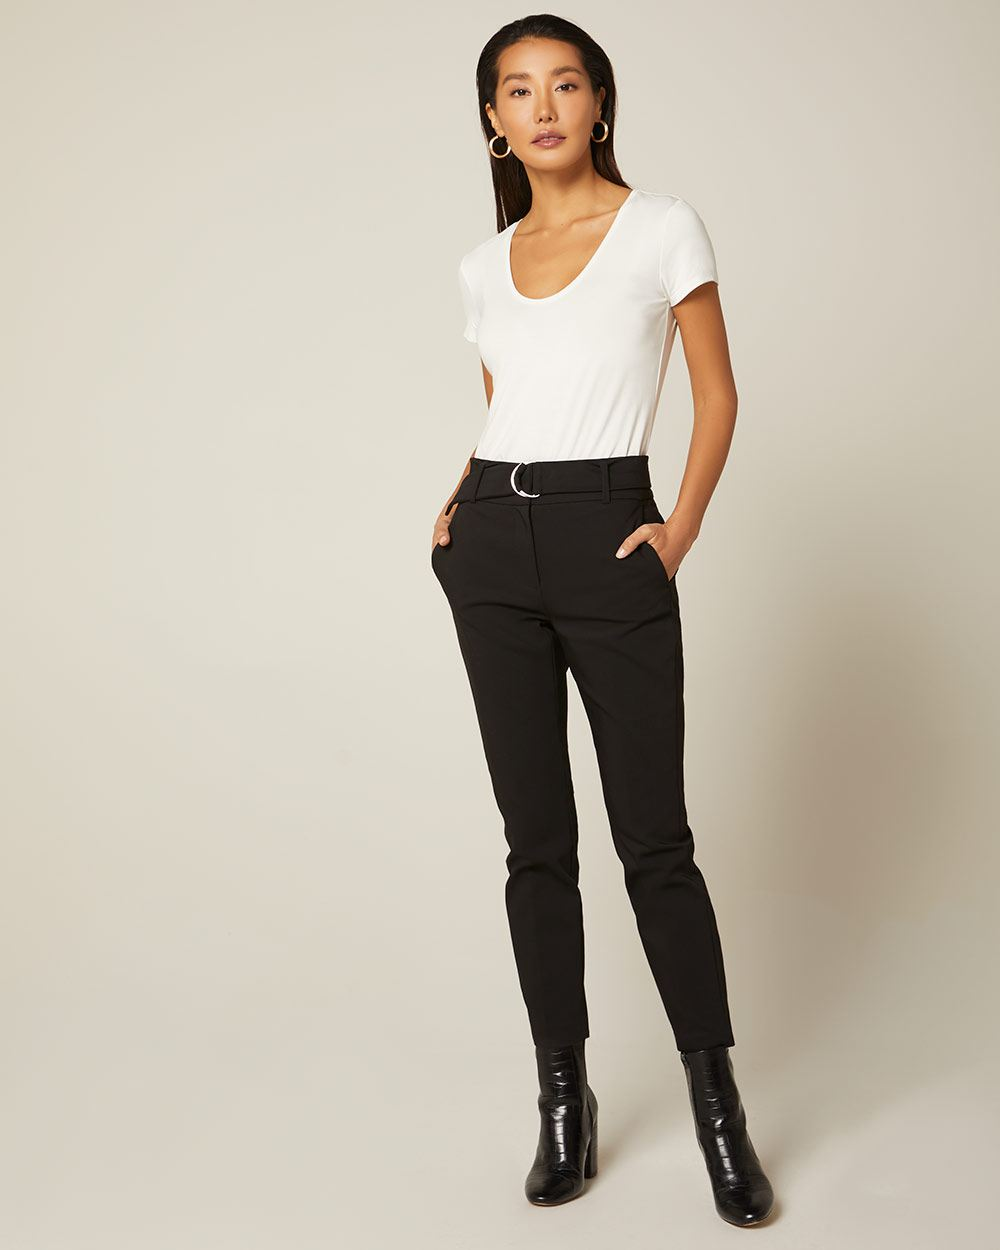 Belted high-waist Slim Leg Ankle Pant